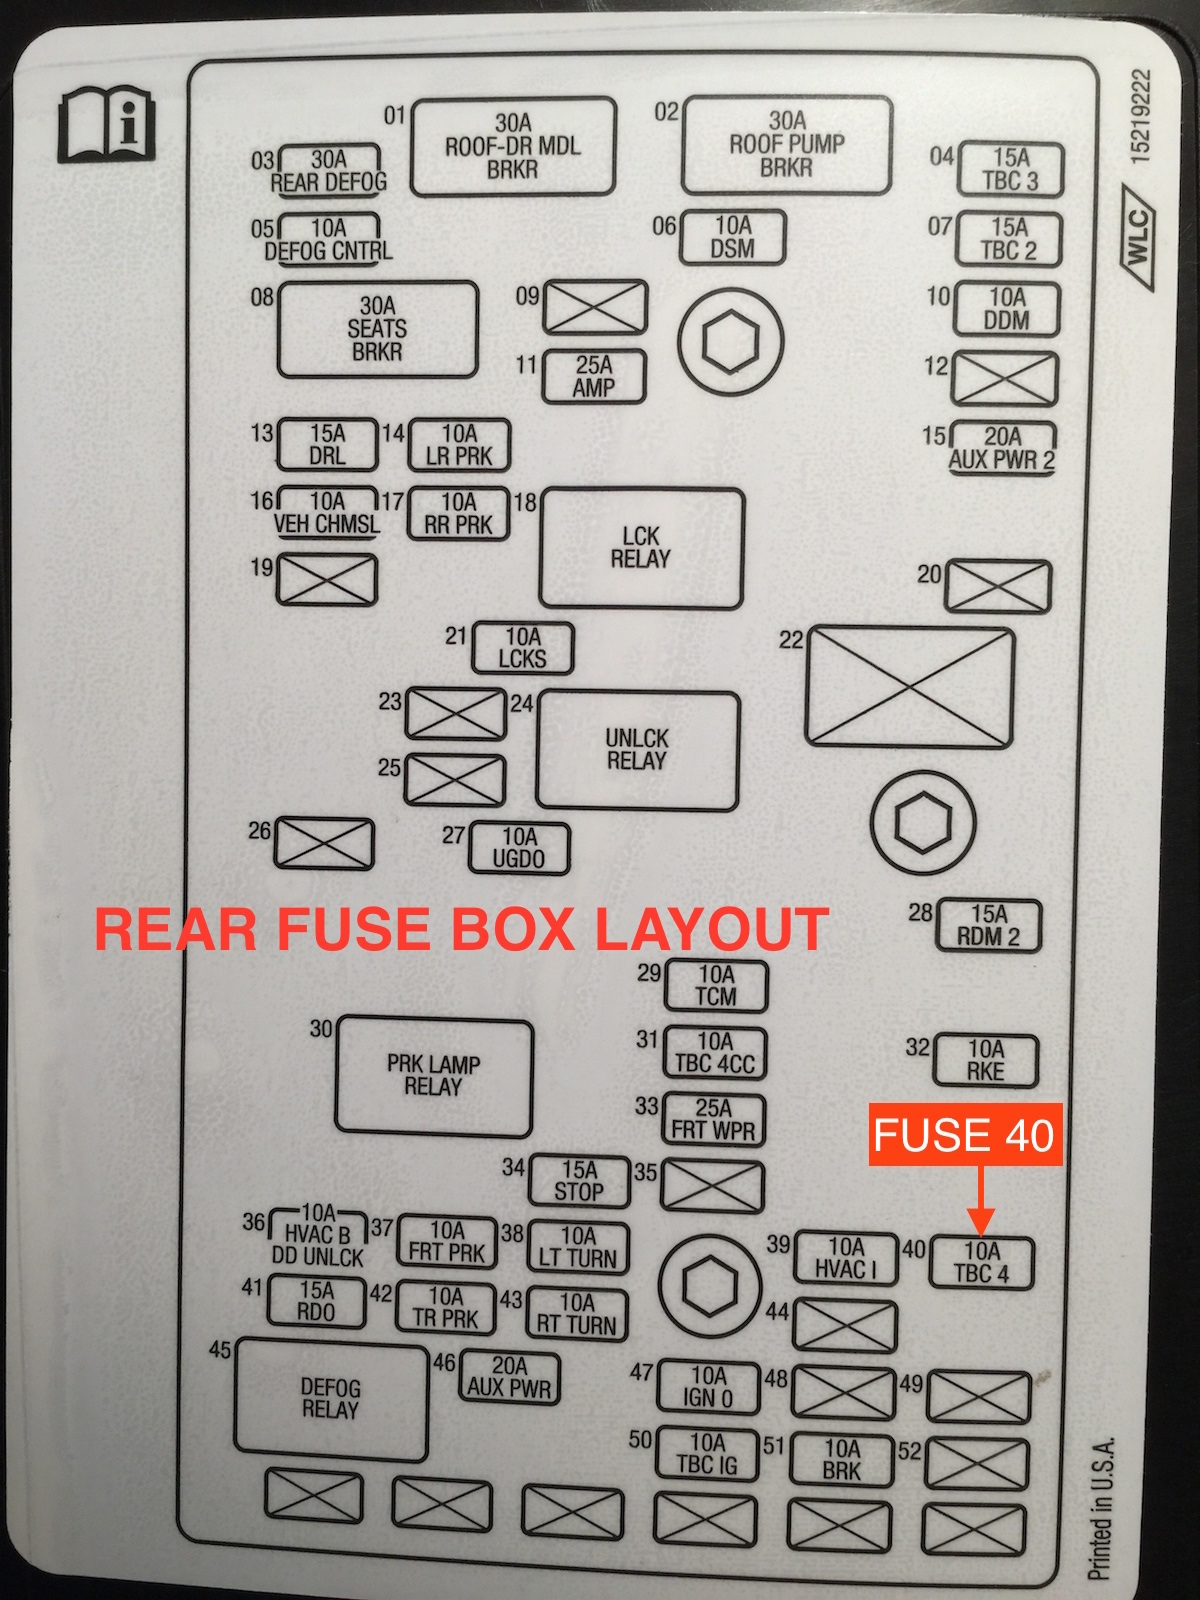 Ssr Fuse Box Manual E Books 2004 Chevrolet Trailblazer Diagram Under Seat Rear 101 Chevy Forumclick Image For Larger Version Name Img 2200 Copy 2